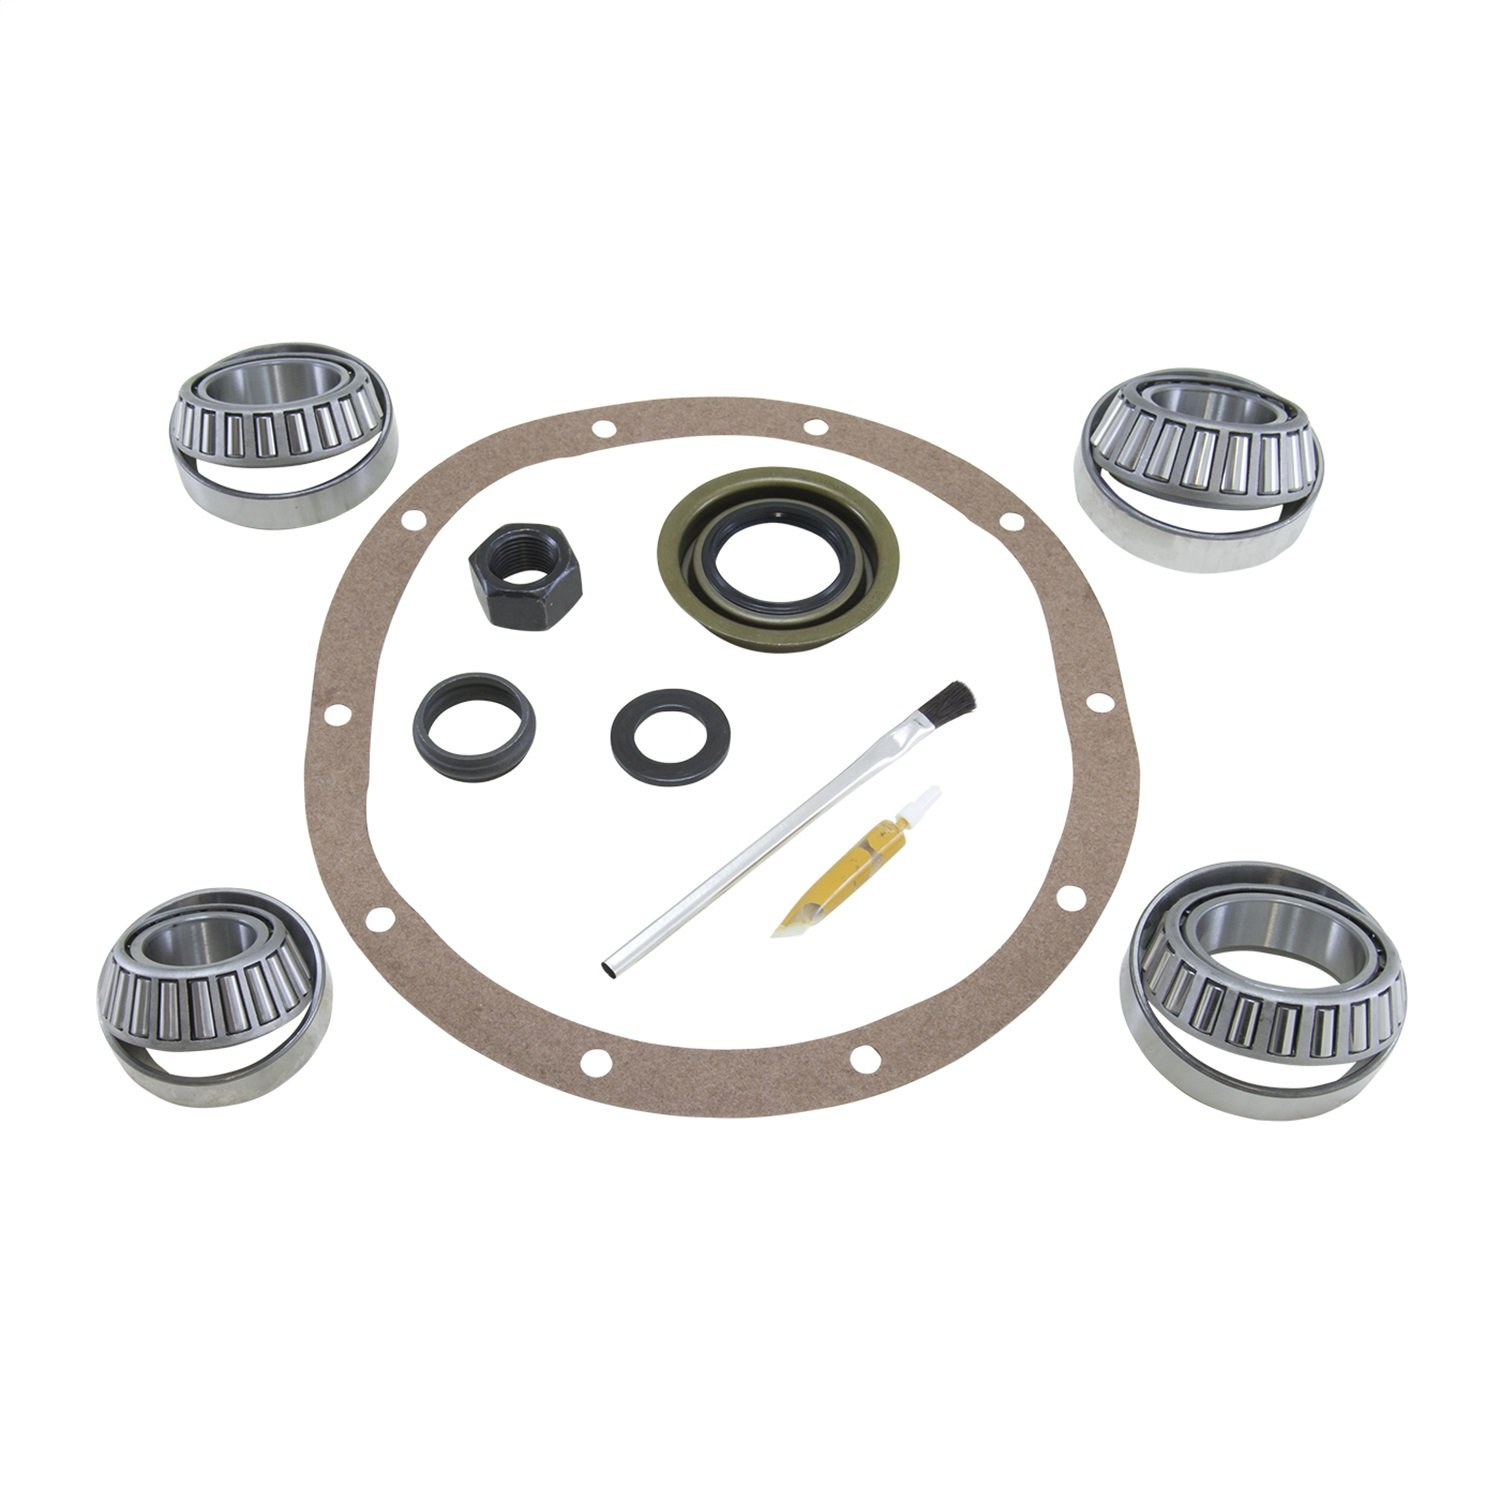 USA Standard Gear (ZBKC8.25-B) Bearing Kit for Chrysler 8.25 Differential by USA Standard Gear